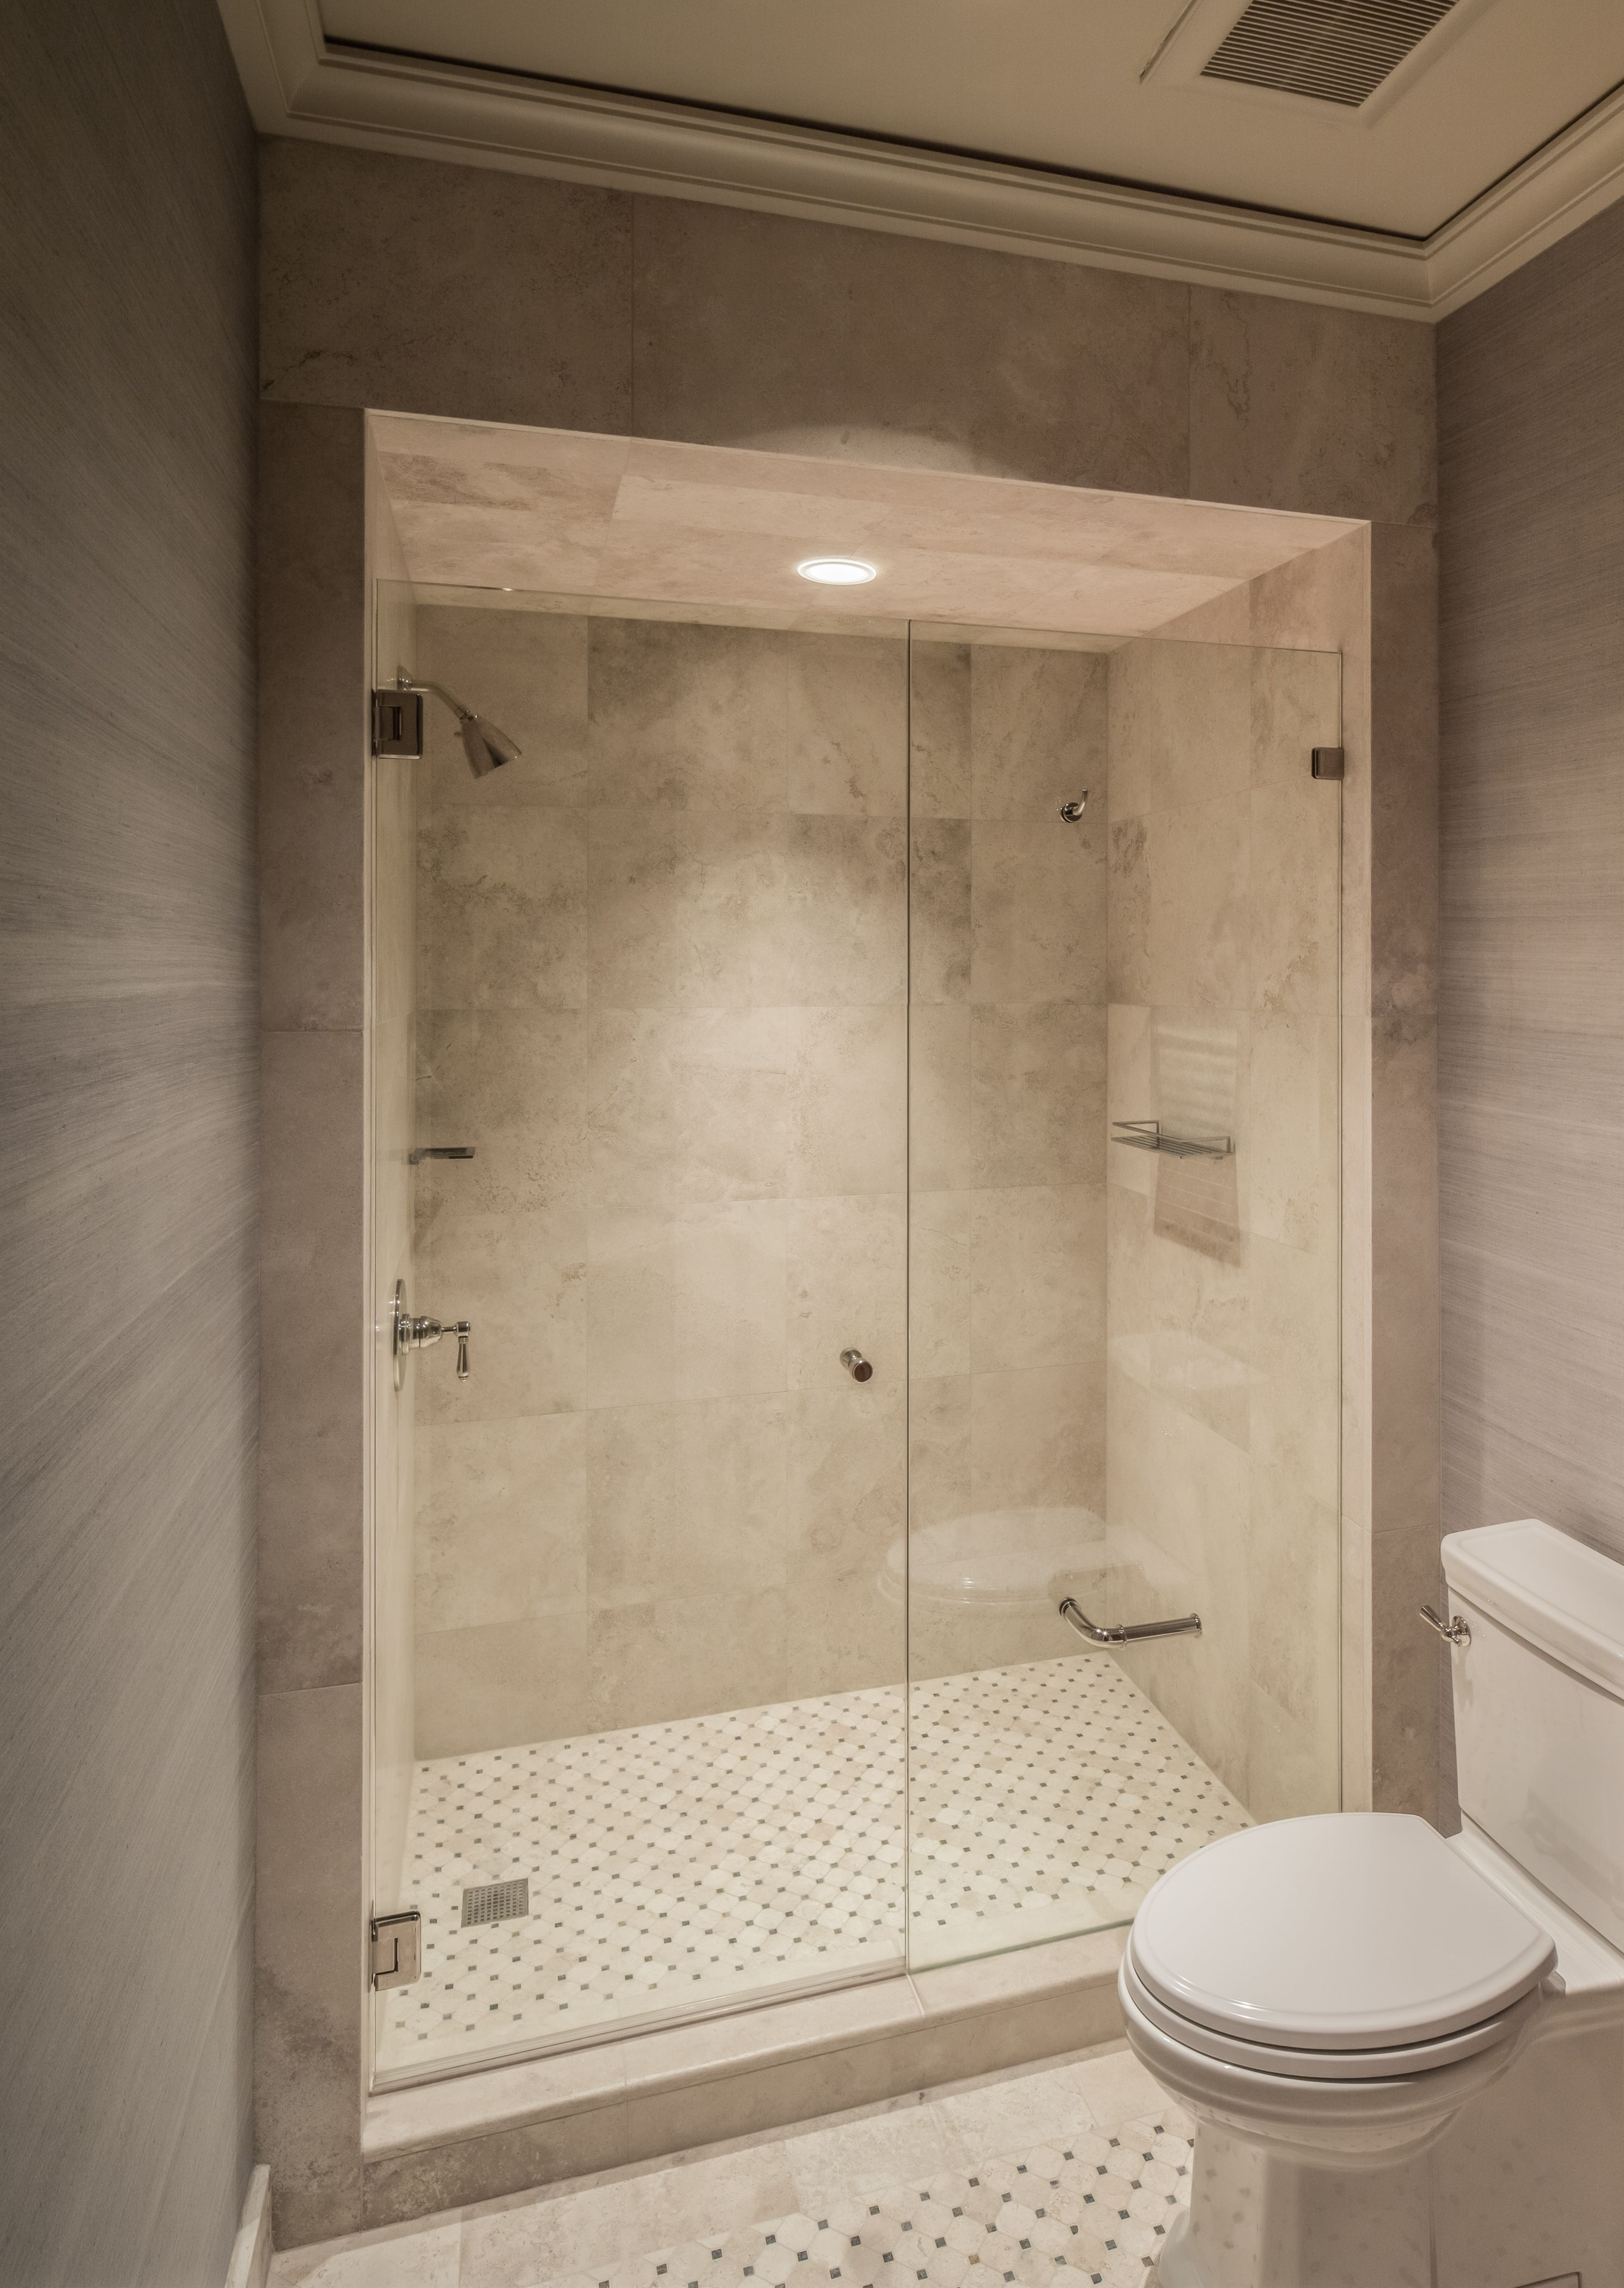 Frameless Shower By Dauphin With Toilet Paper Holder Installed In Glass Dauphin Sales Suite 273 At The Ho Shower Doors Bathroom Interior Design Glass Shower